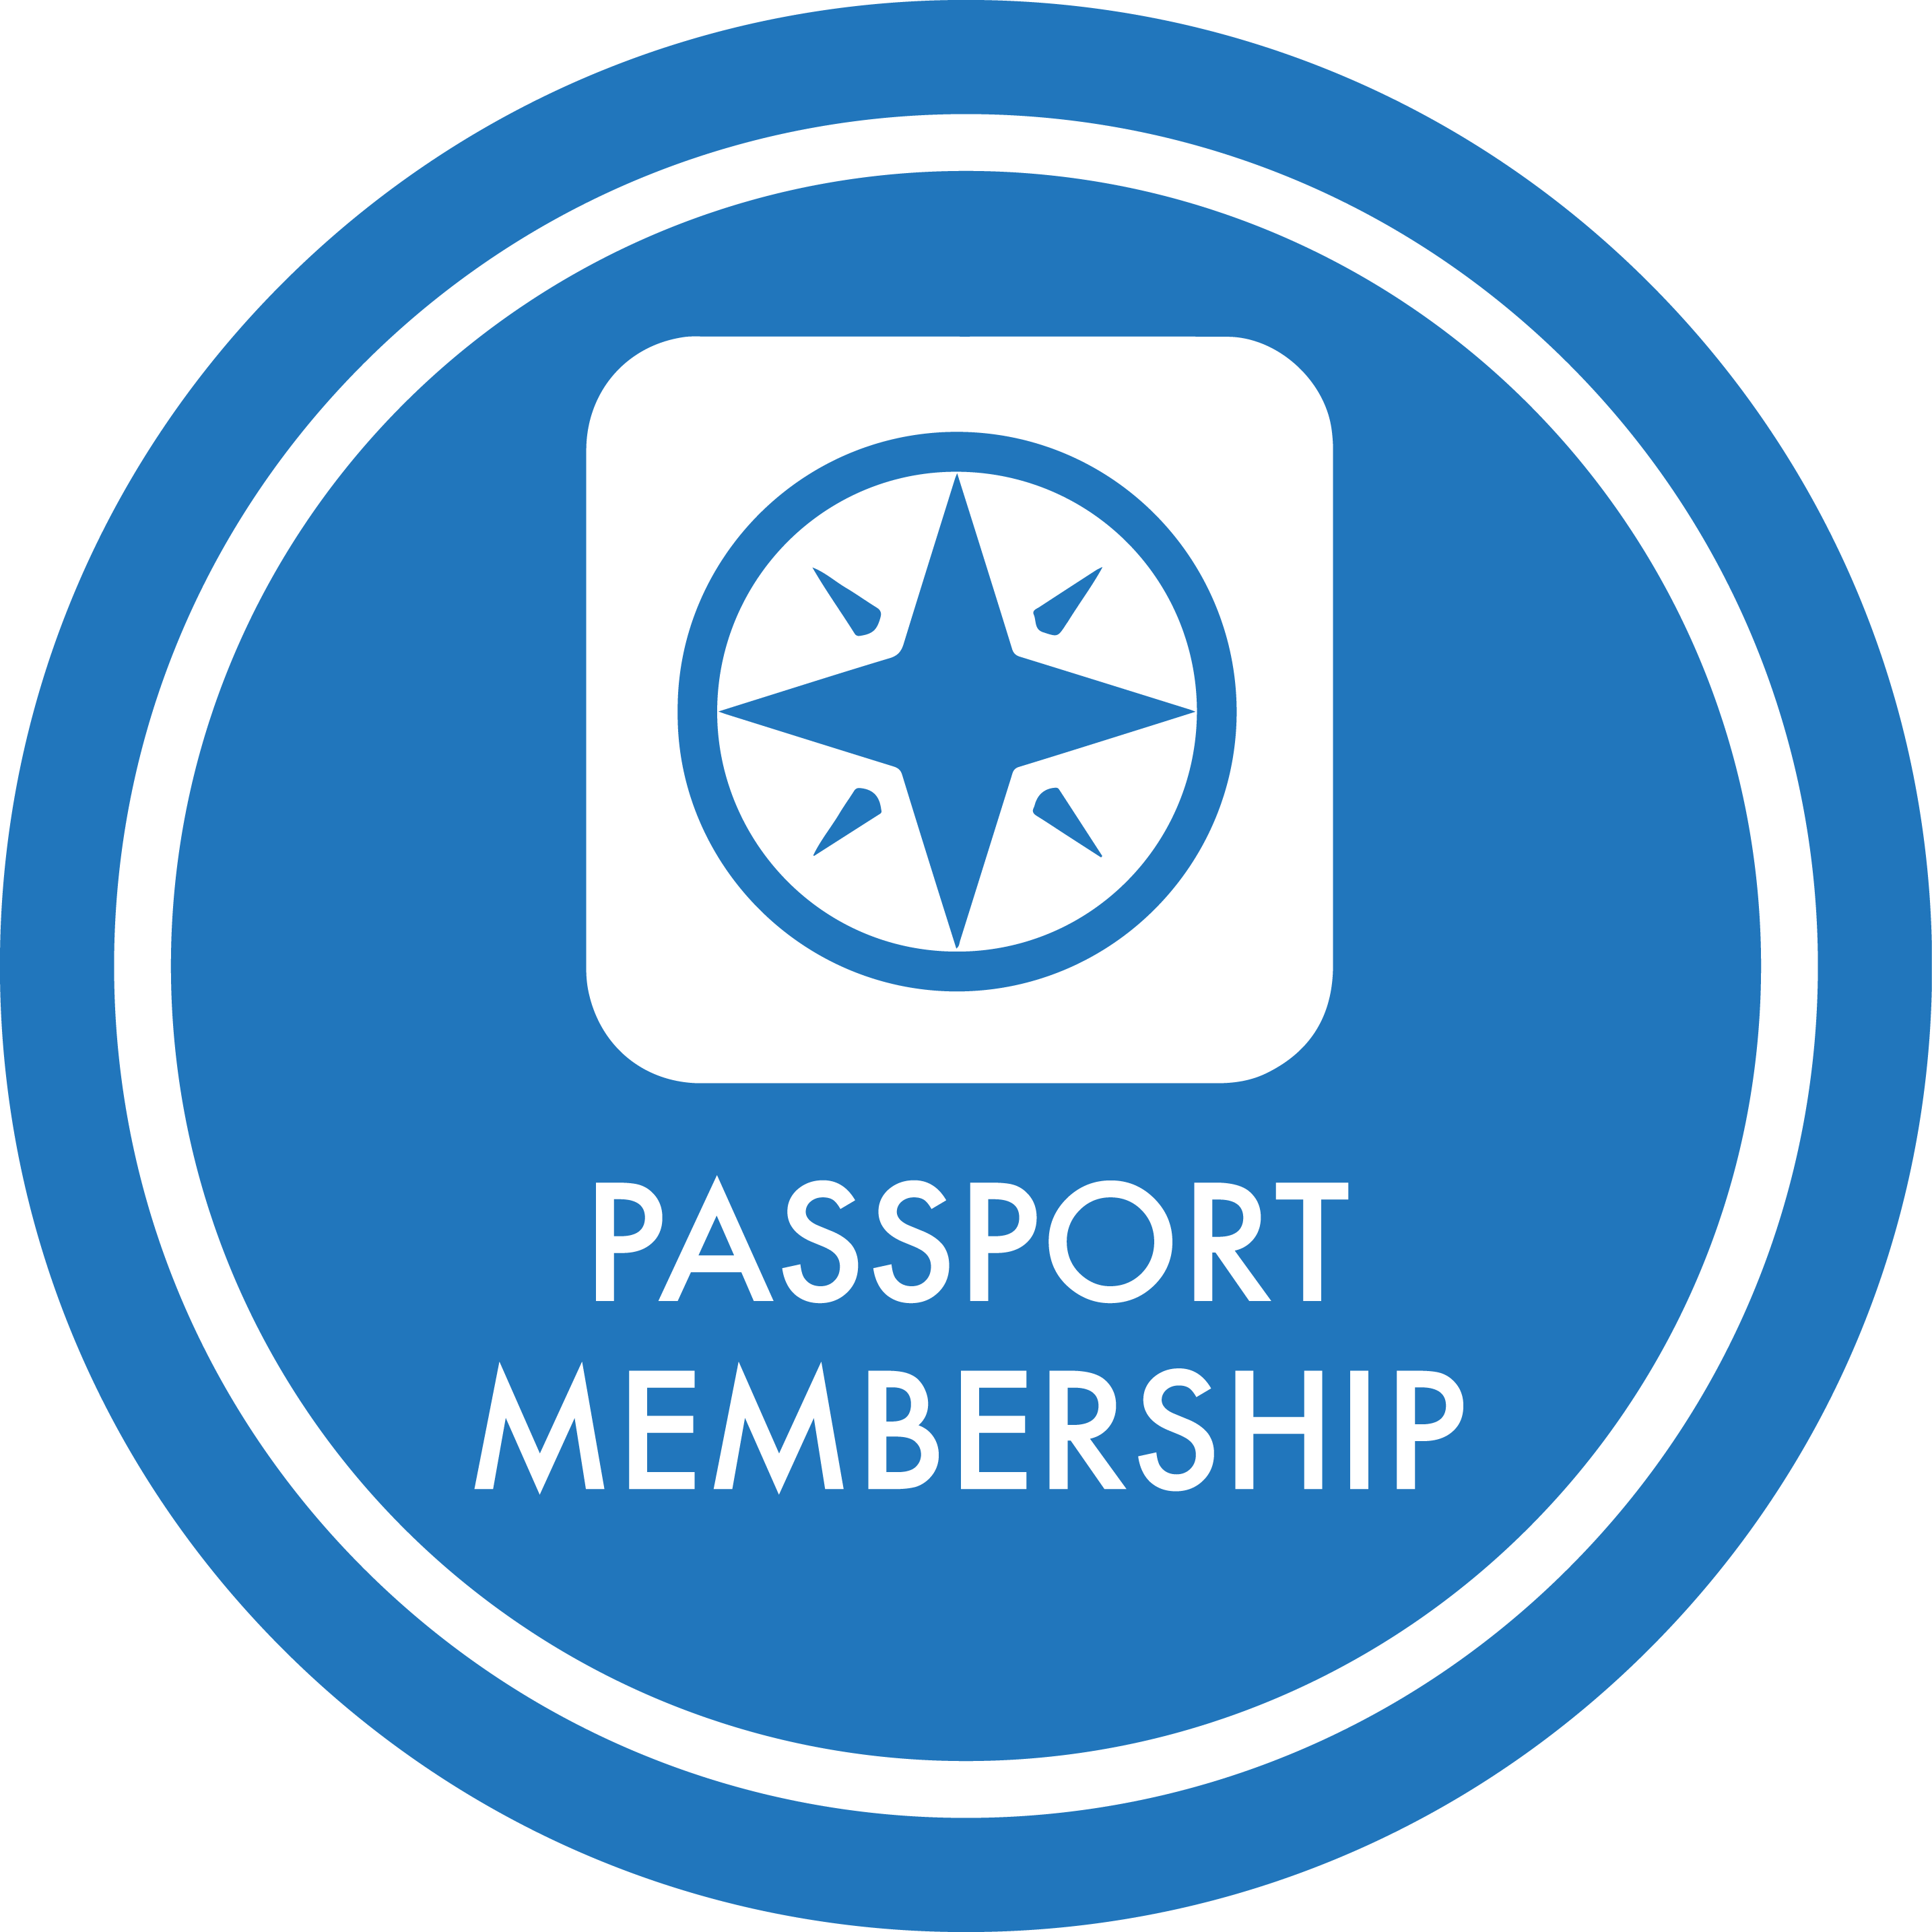 Passport Membership